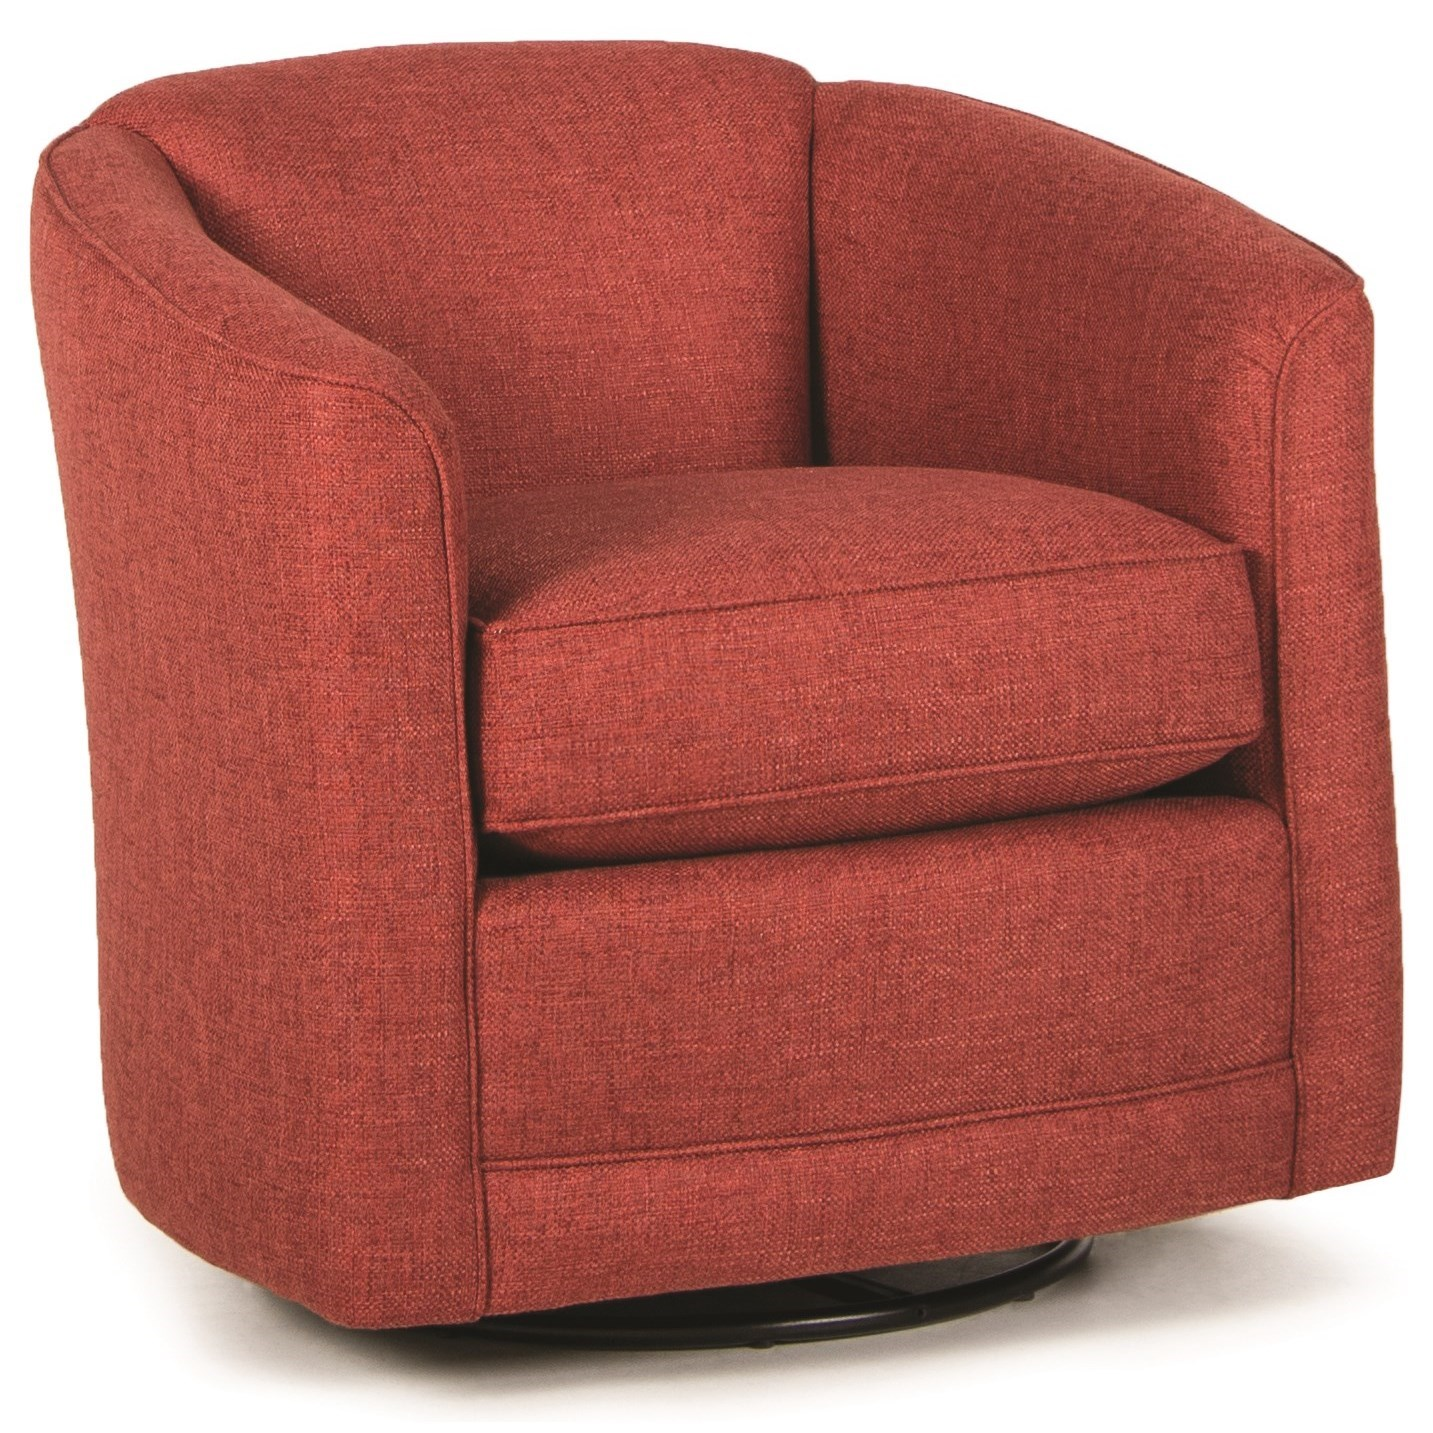 506 Swivel Glider Chair by Smith Brothers at Westrich Furniture & Appliances